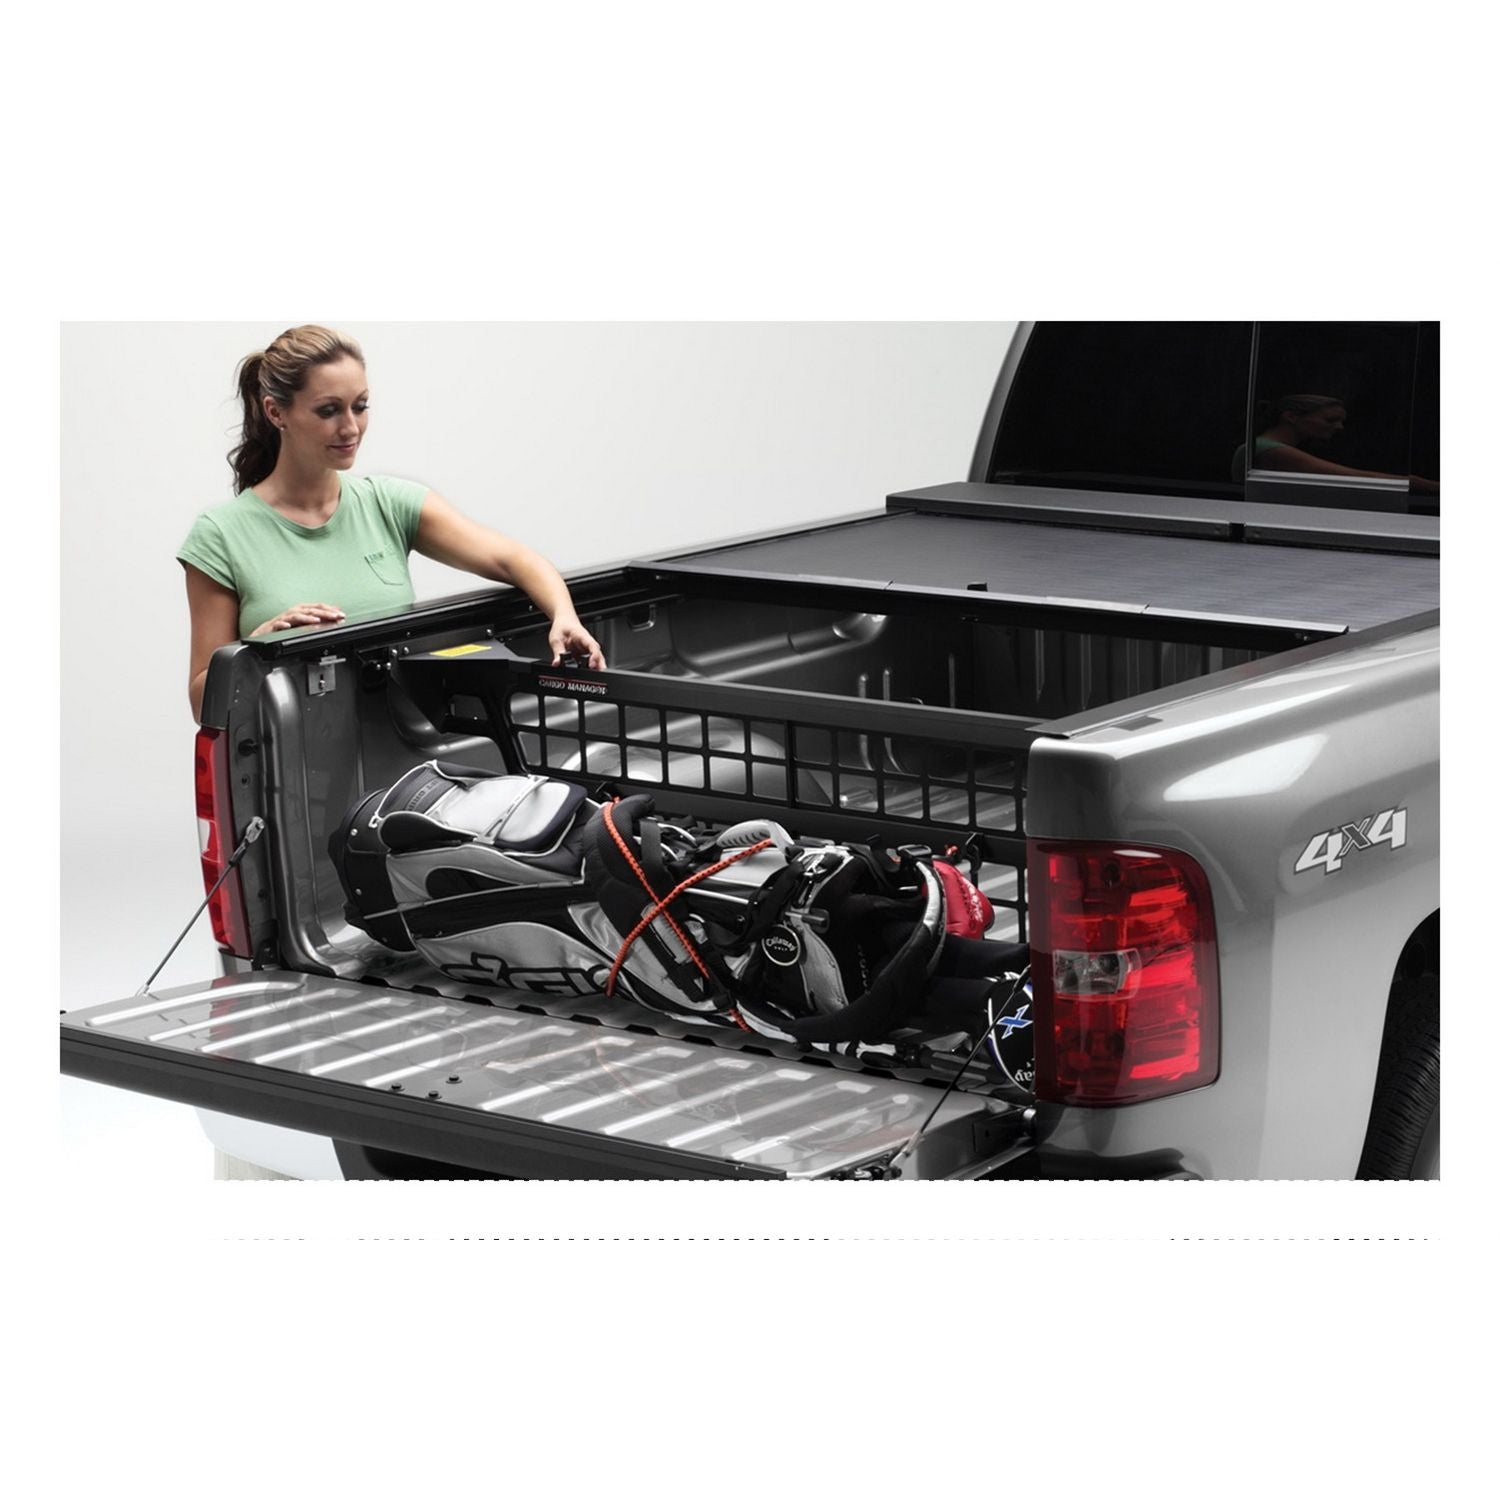 Roll-N-Lock CM401 Cargo Manager Rolling Truck Bed Divider Works Only with Roll-N-Lock Covers for 2019-2020 Ram 1500 w/RamBox | Fits 5.6 Ft. Bed